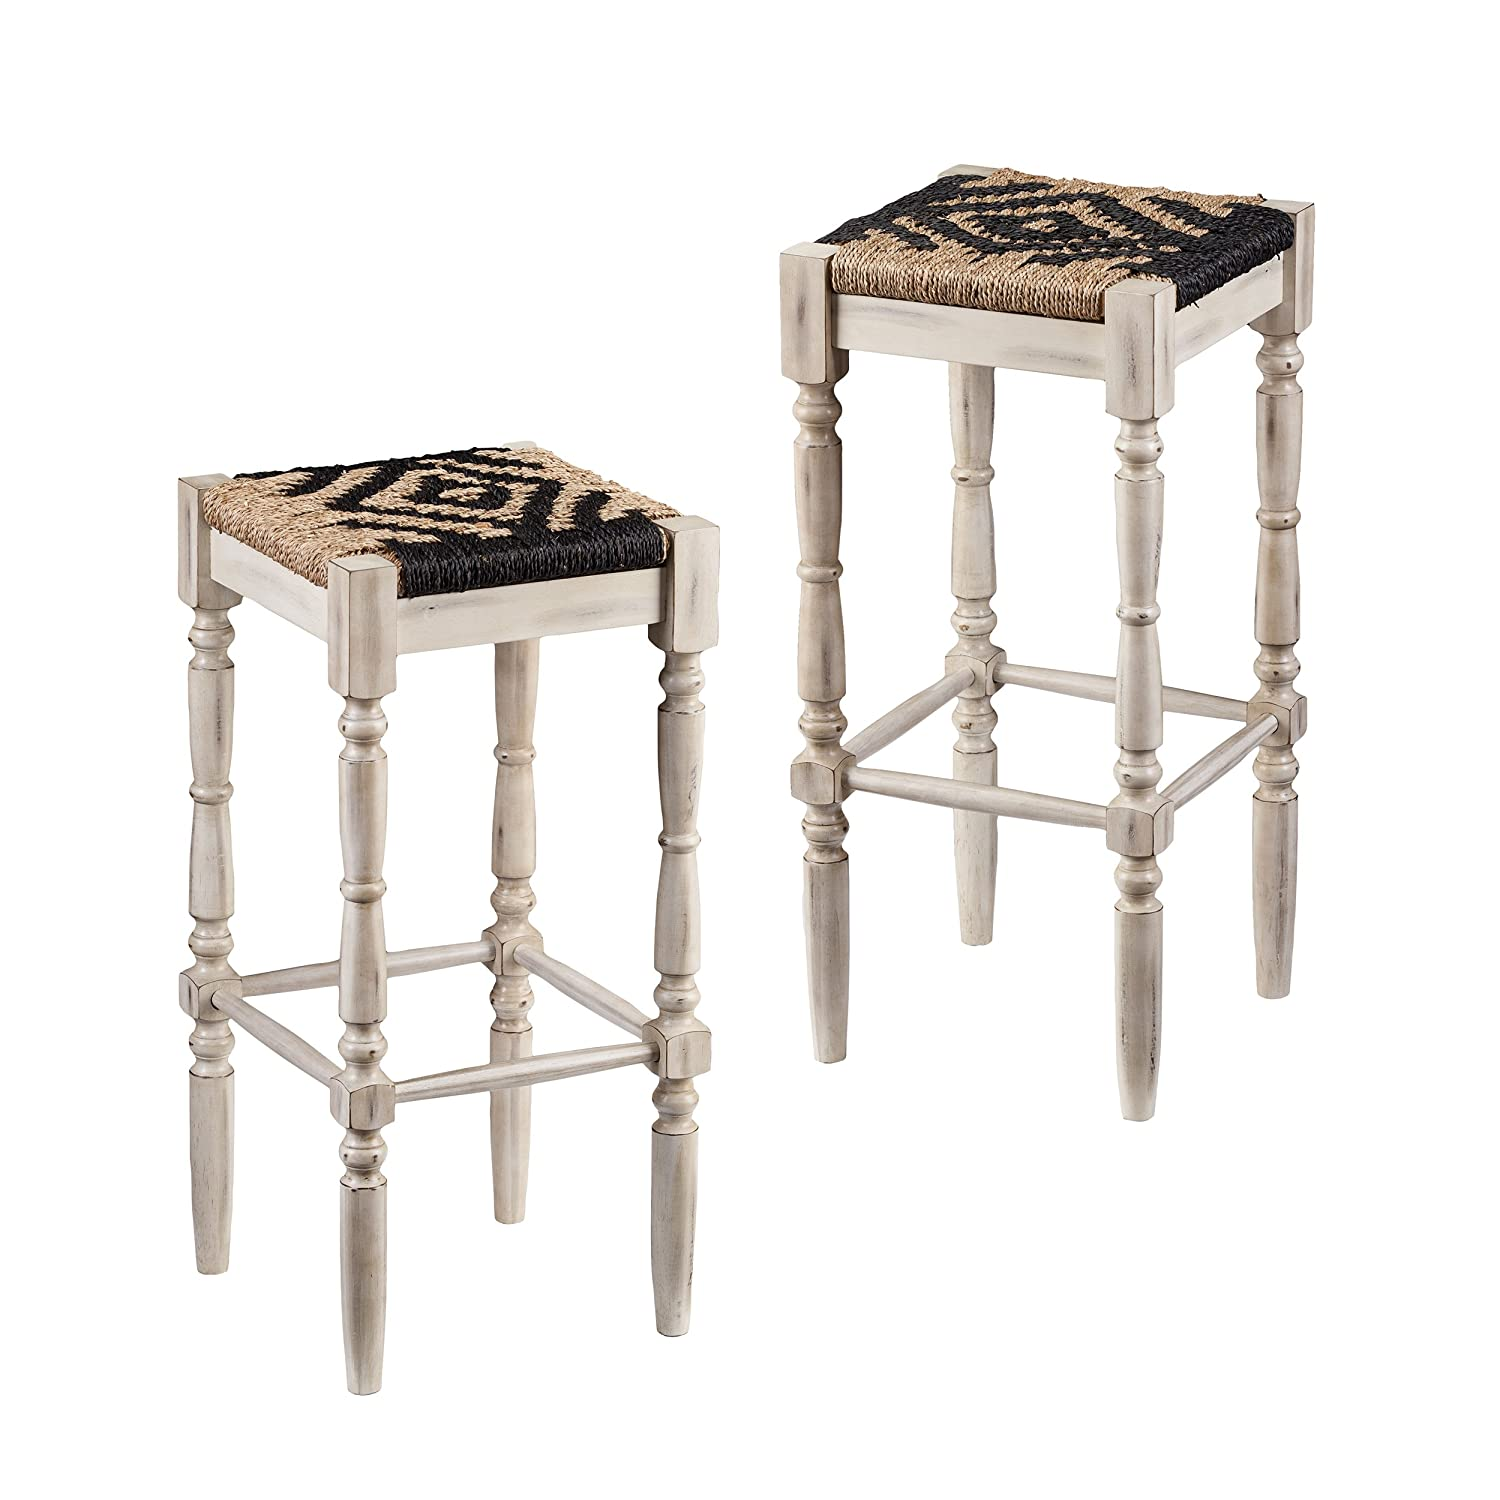 Amazoncom Furniture Hotspot 30 Inch Bar Stools Backless Hyacinth